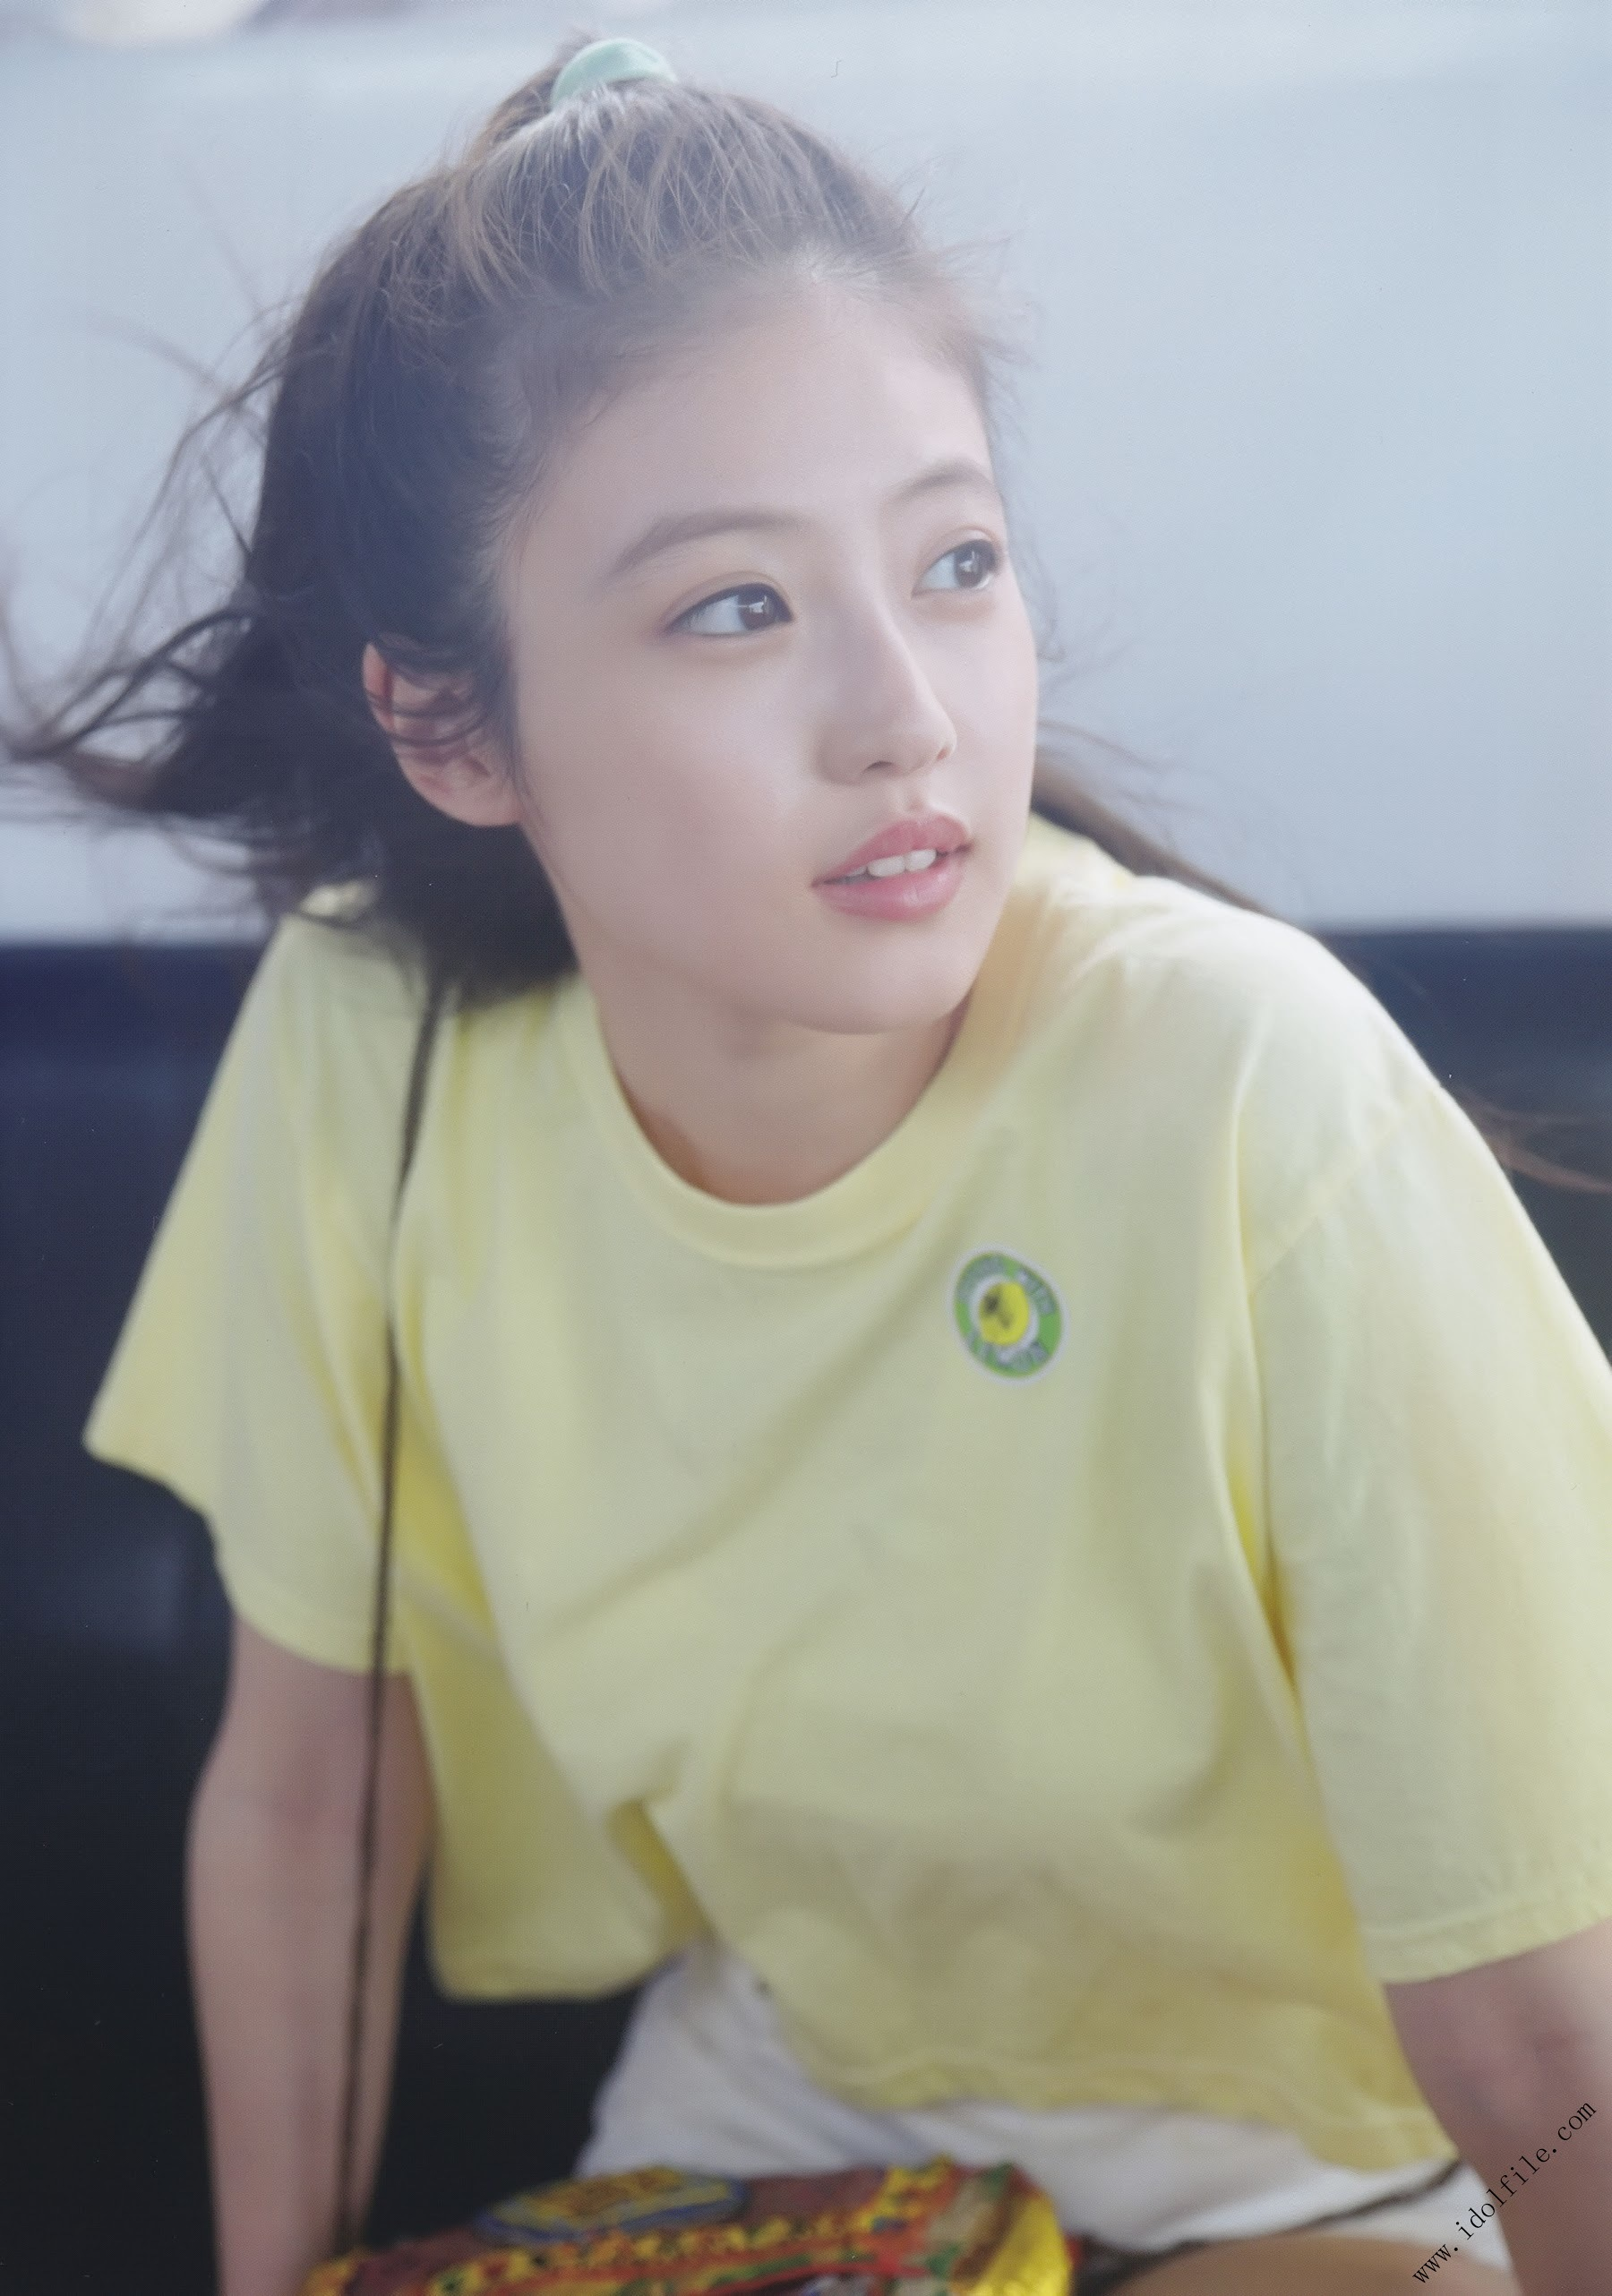 Pretty and beautiful, 22 years old and innocent Moving to the next stage as an actress Mio Imada011